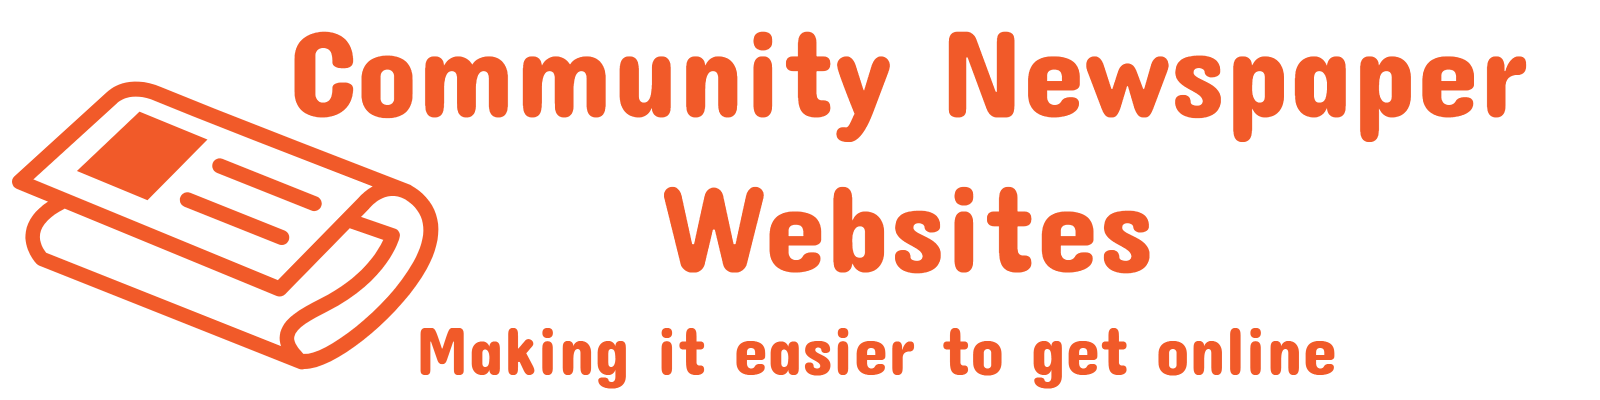 Websites for Community Newspapers full logo